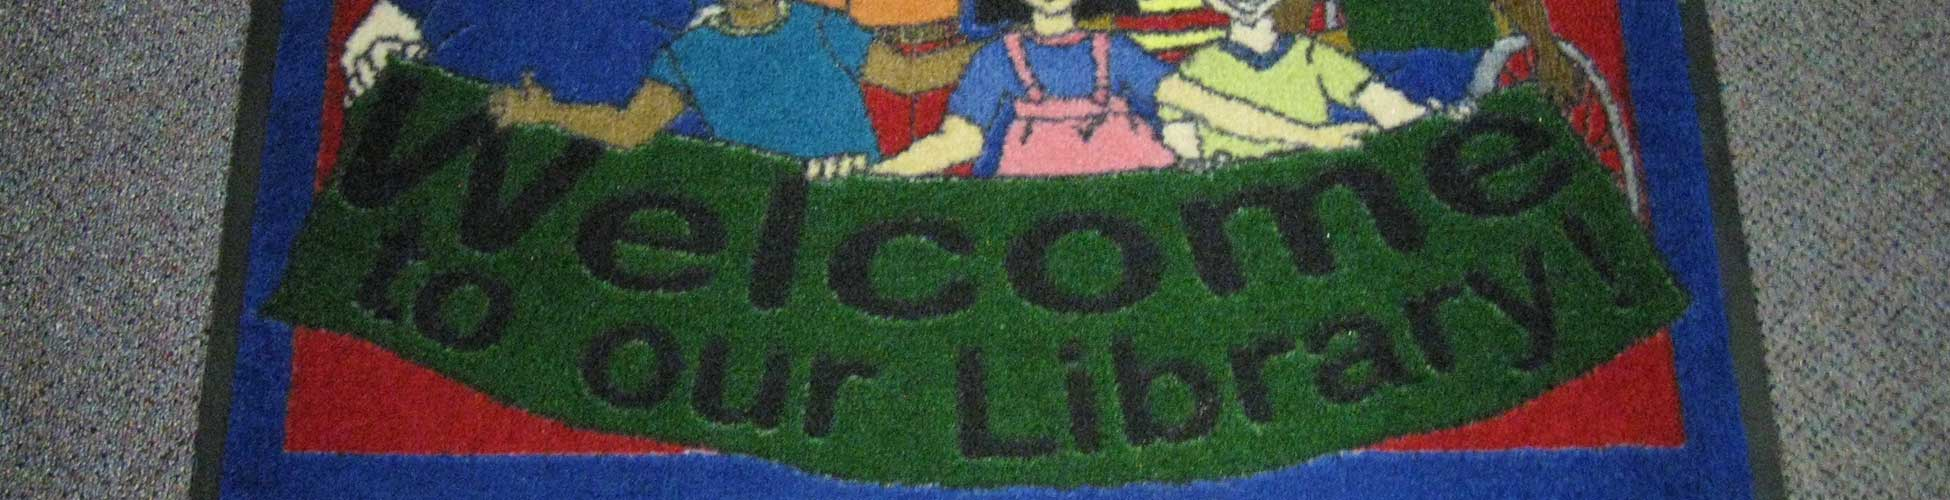 Library Welcome Rug